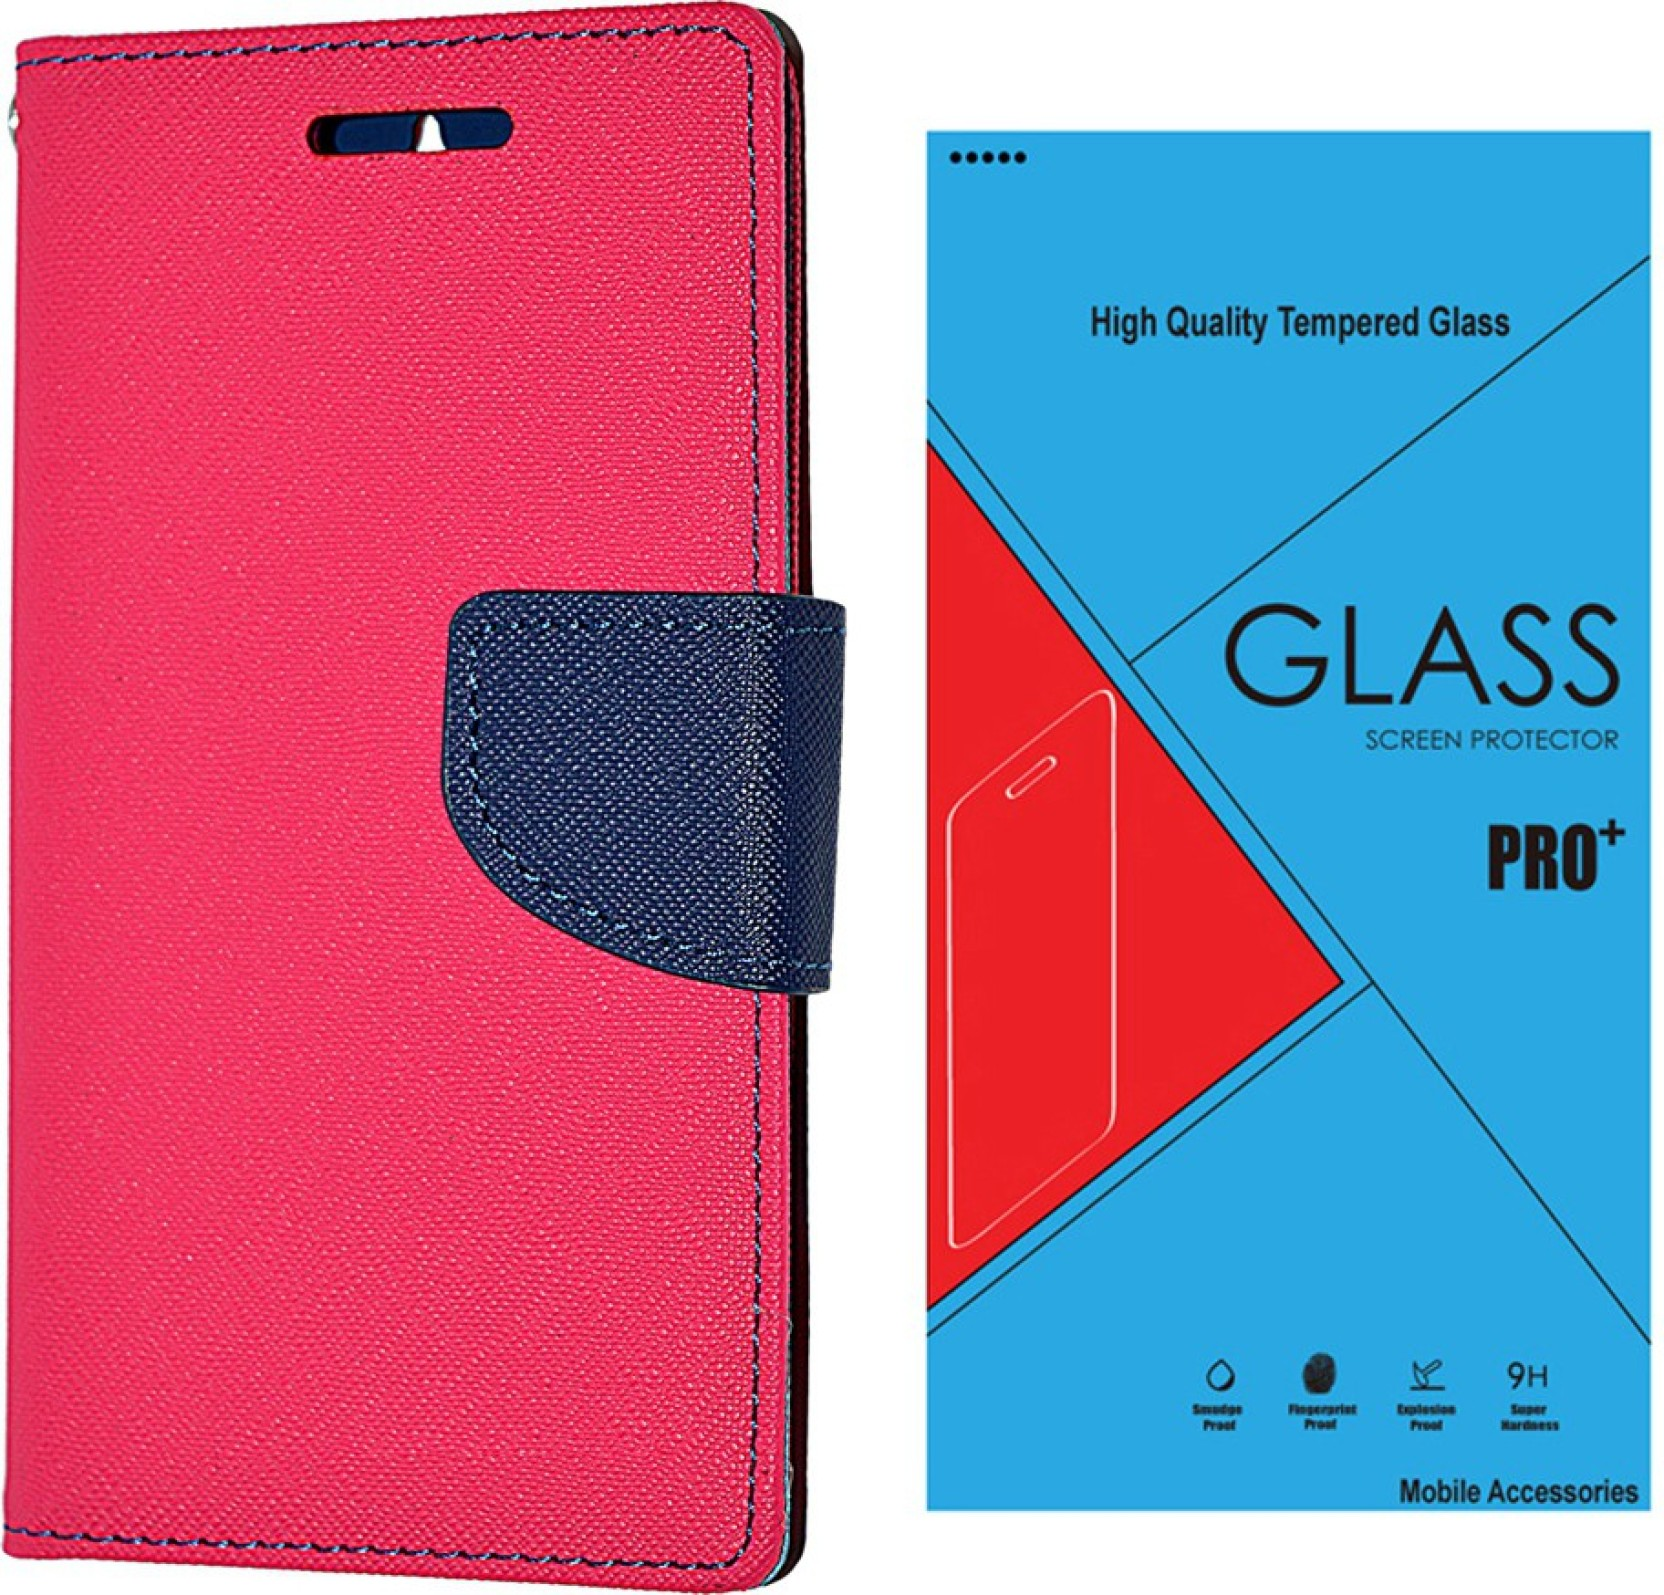 Goospery Premium Flip Cover For Samsung Galaxy Note 4 N910 Murc Tempered Glass 9h Quality Pink 2416 Share